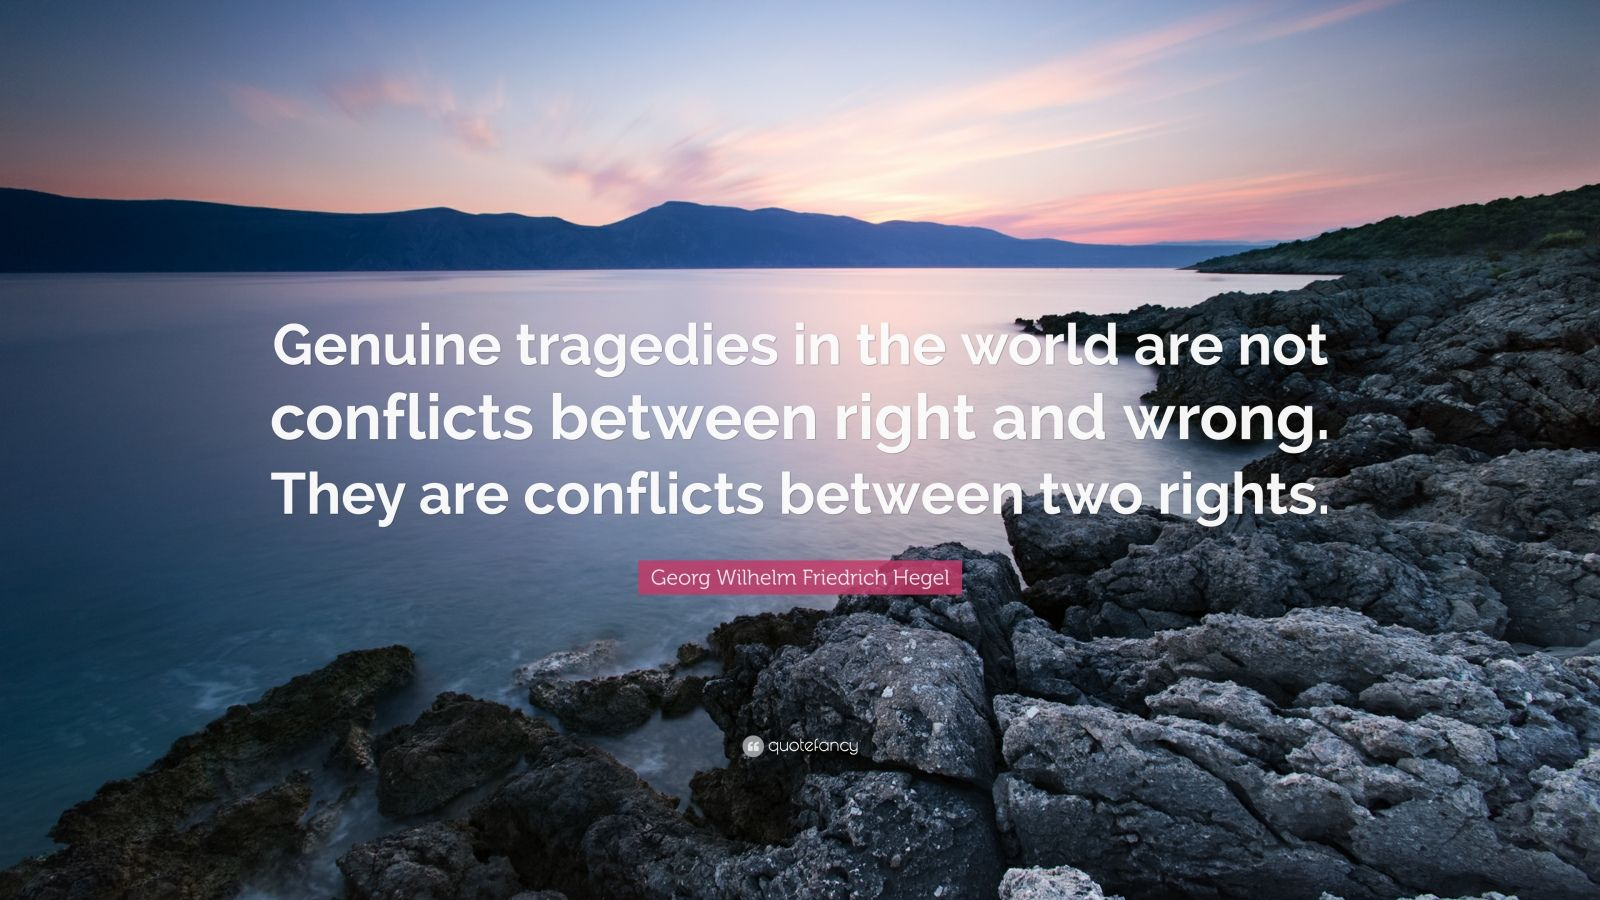 """Georg Wilhelm Friedrich Hegel Quote: """"Genuine tragedies in the world are not conflicts between right and wrong. They are conflicts between two rights."""""""